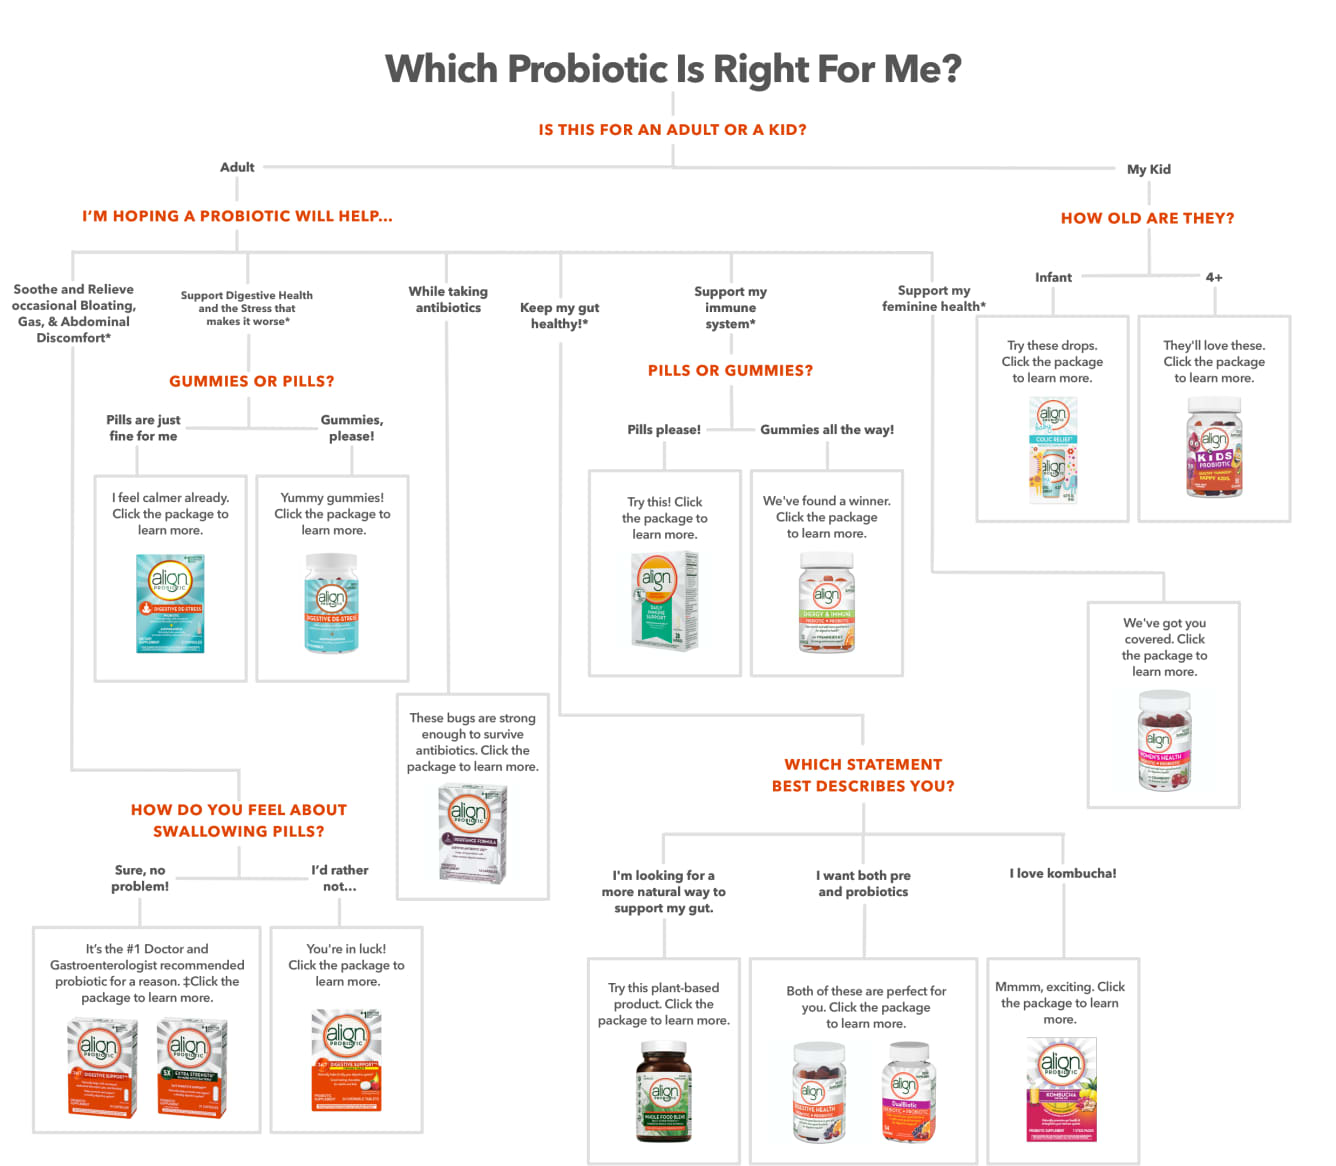 Know Which Probiotics is Right for You